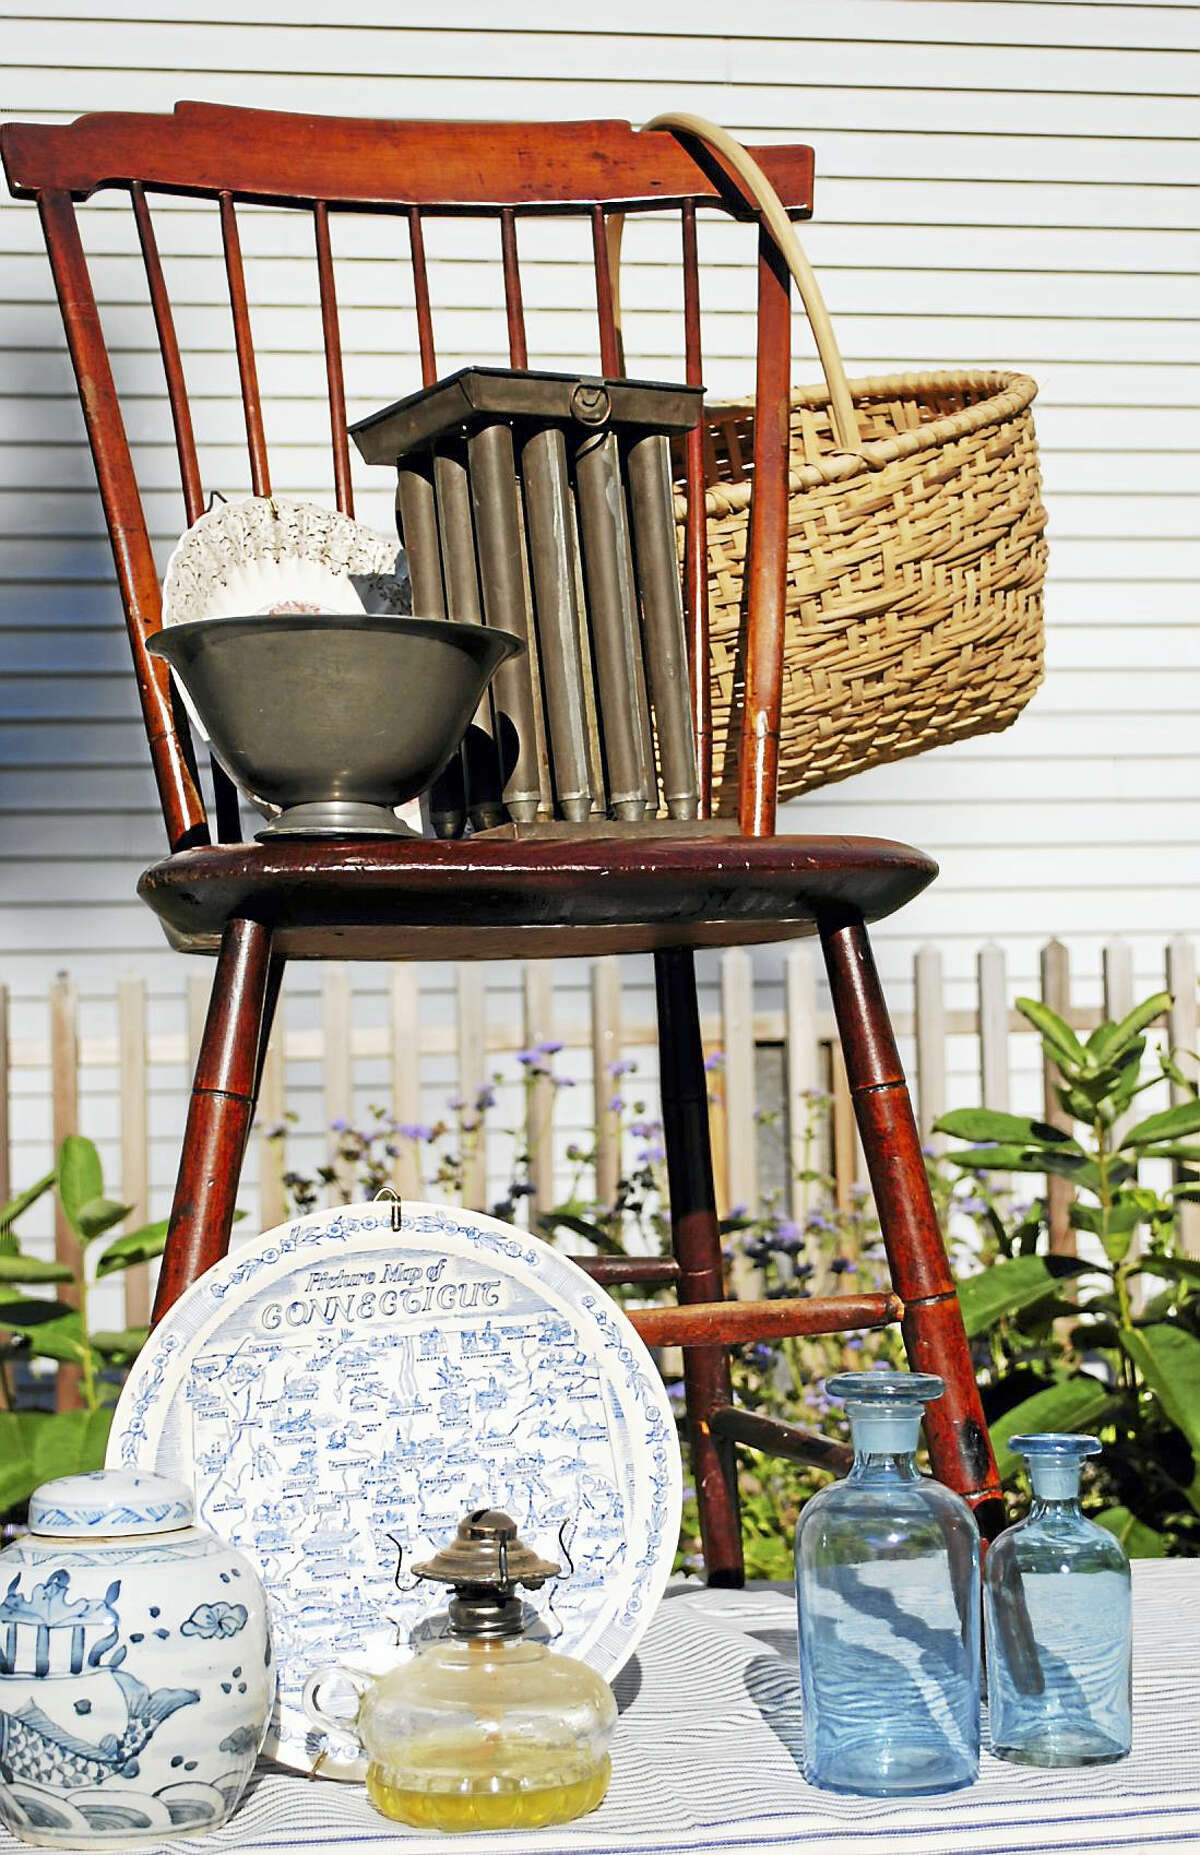 """Haddam: The Haddam Historical Society is hosting """"Antiques and Uniques"""" on Saturday, Oct. 15, 10 a.m.-3 p.m. on the grounds of Whole Harmony Apothecary at 1572 Saybrook Road, Haddam. The event is free to the public. The marketplace will feature quality collectibles, antiques, vintage and a many other unique treasures. Highlights include estate furniture, antique books, vintage linens and all around great goods. Whole Harmony, a new herbal apothecary located in the historic Alpheus W. Tyler House will be open and visitors can shop for hand crafted artisan tea blends and accessories. For additional information, visit www.haddamhistory.org or call 860-345-2400 or email contact@haddamhistory.org. The event benefits the Thankful Arnold House Museum and Haddam Historical Society."""